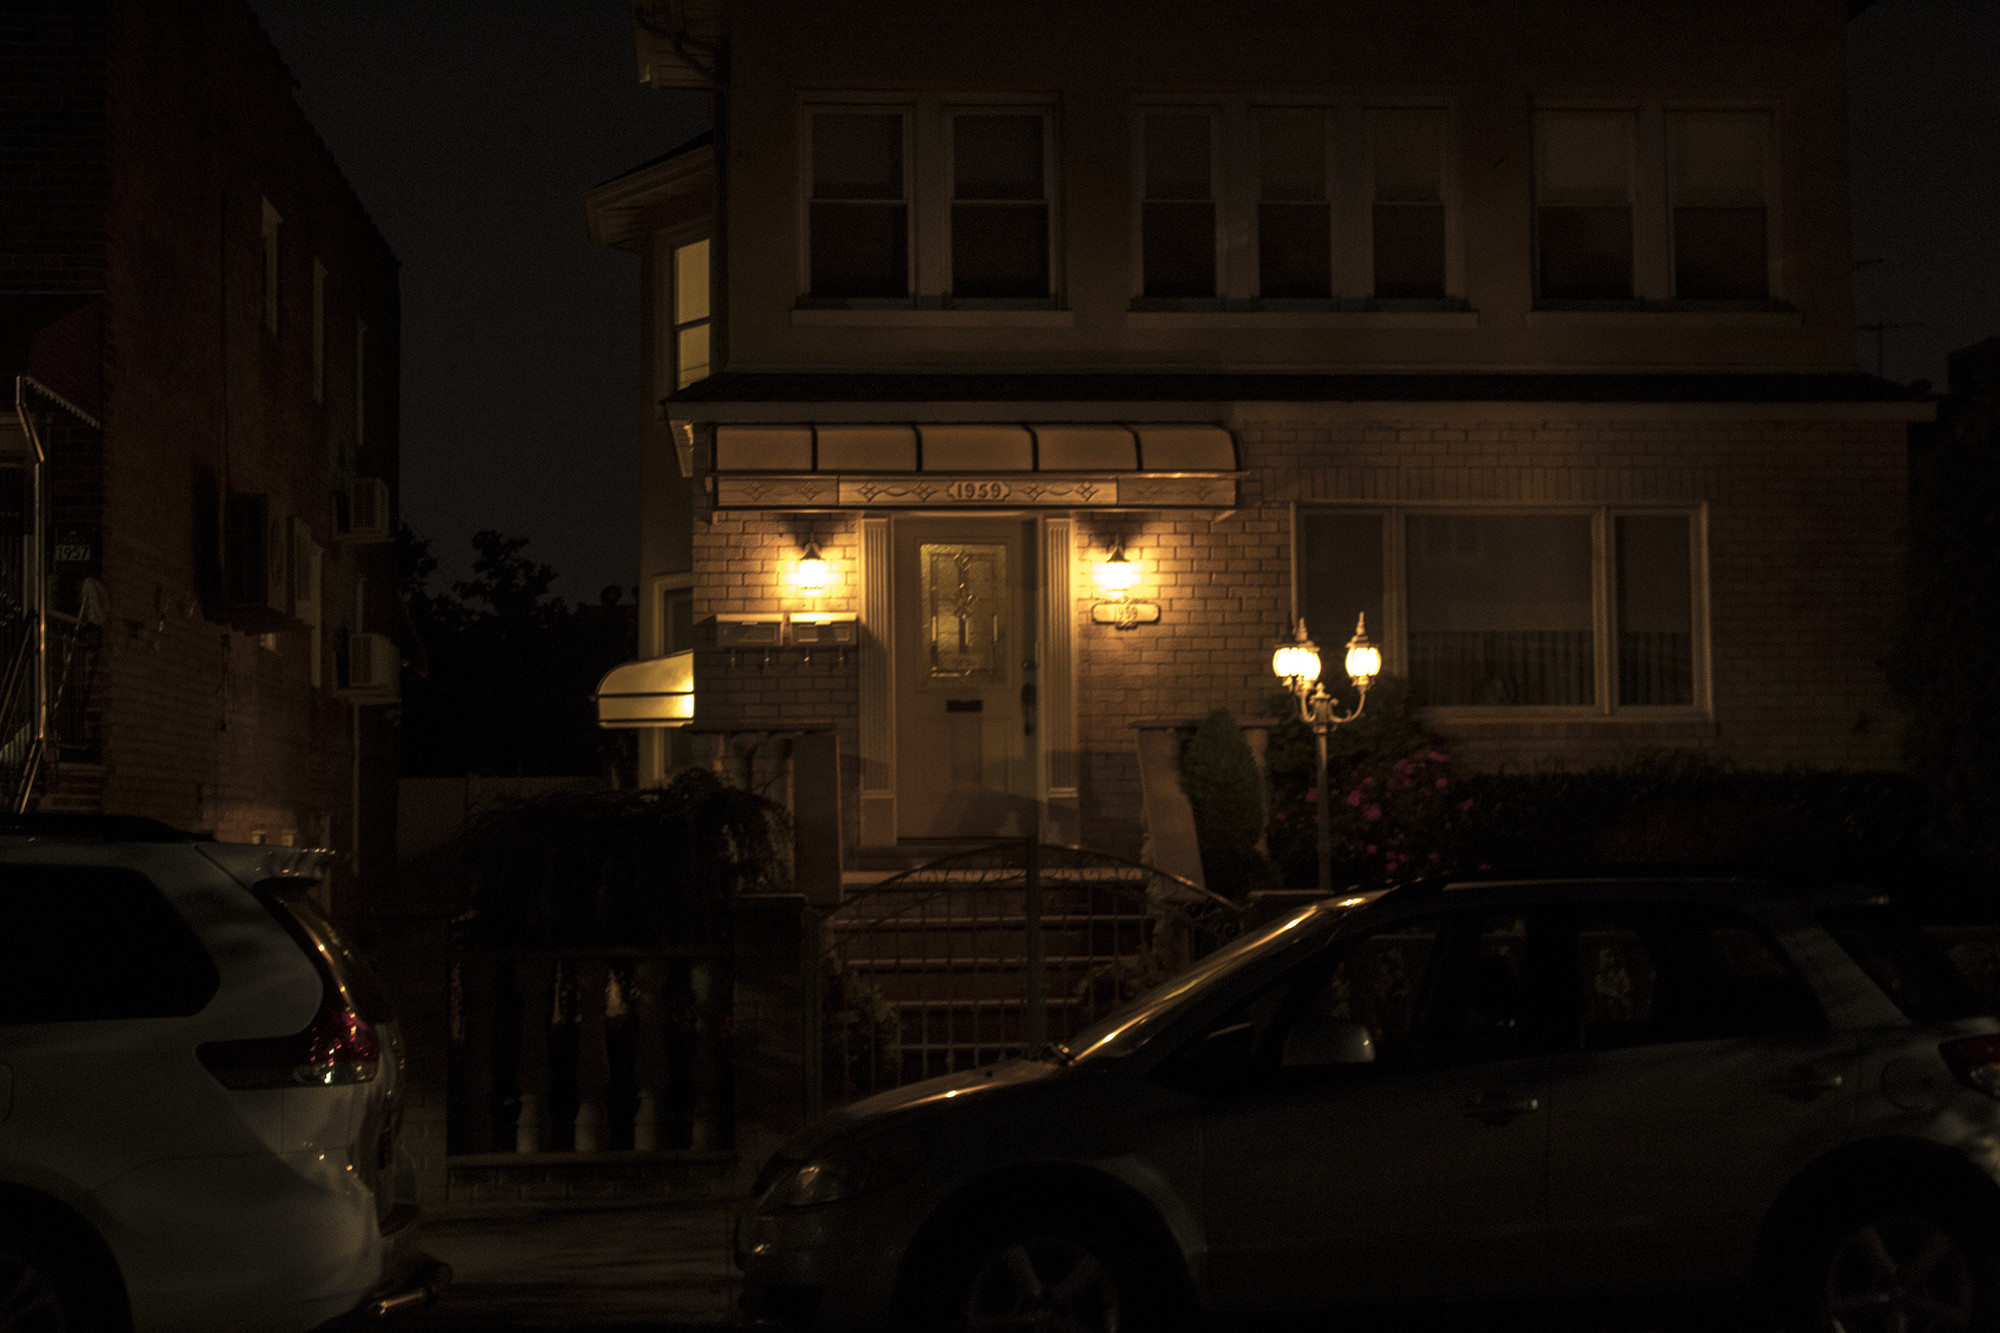 house and cars illuminated by streetlamp